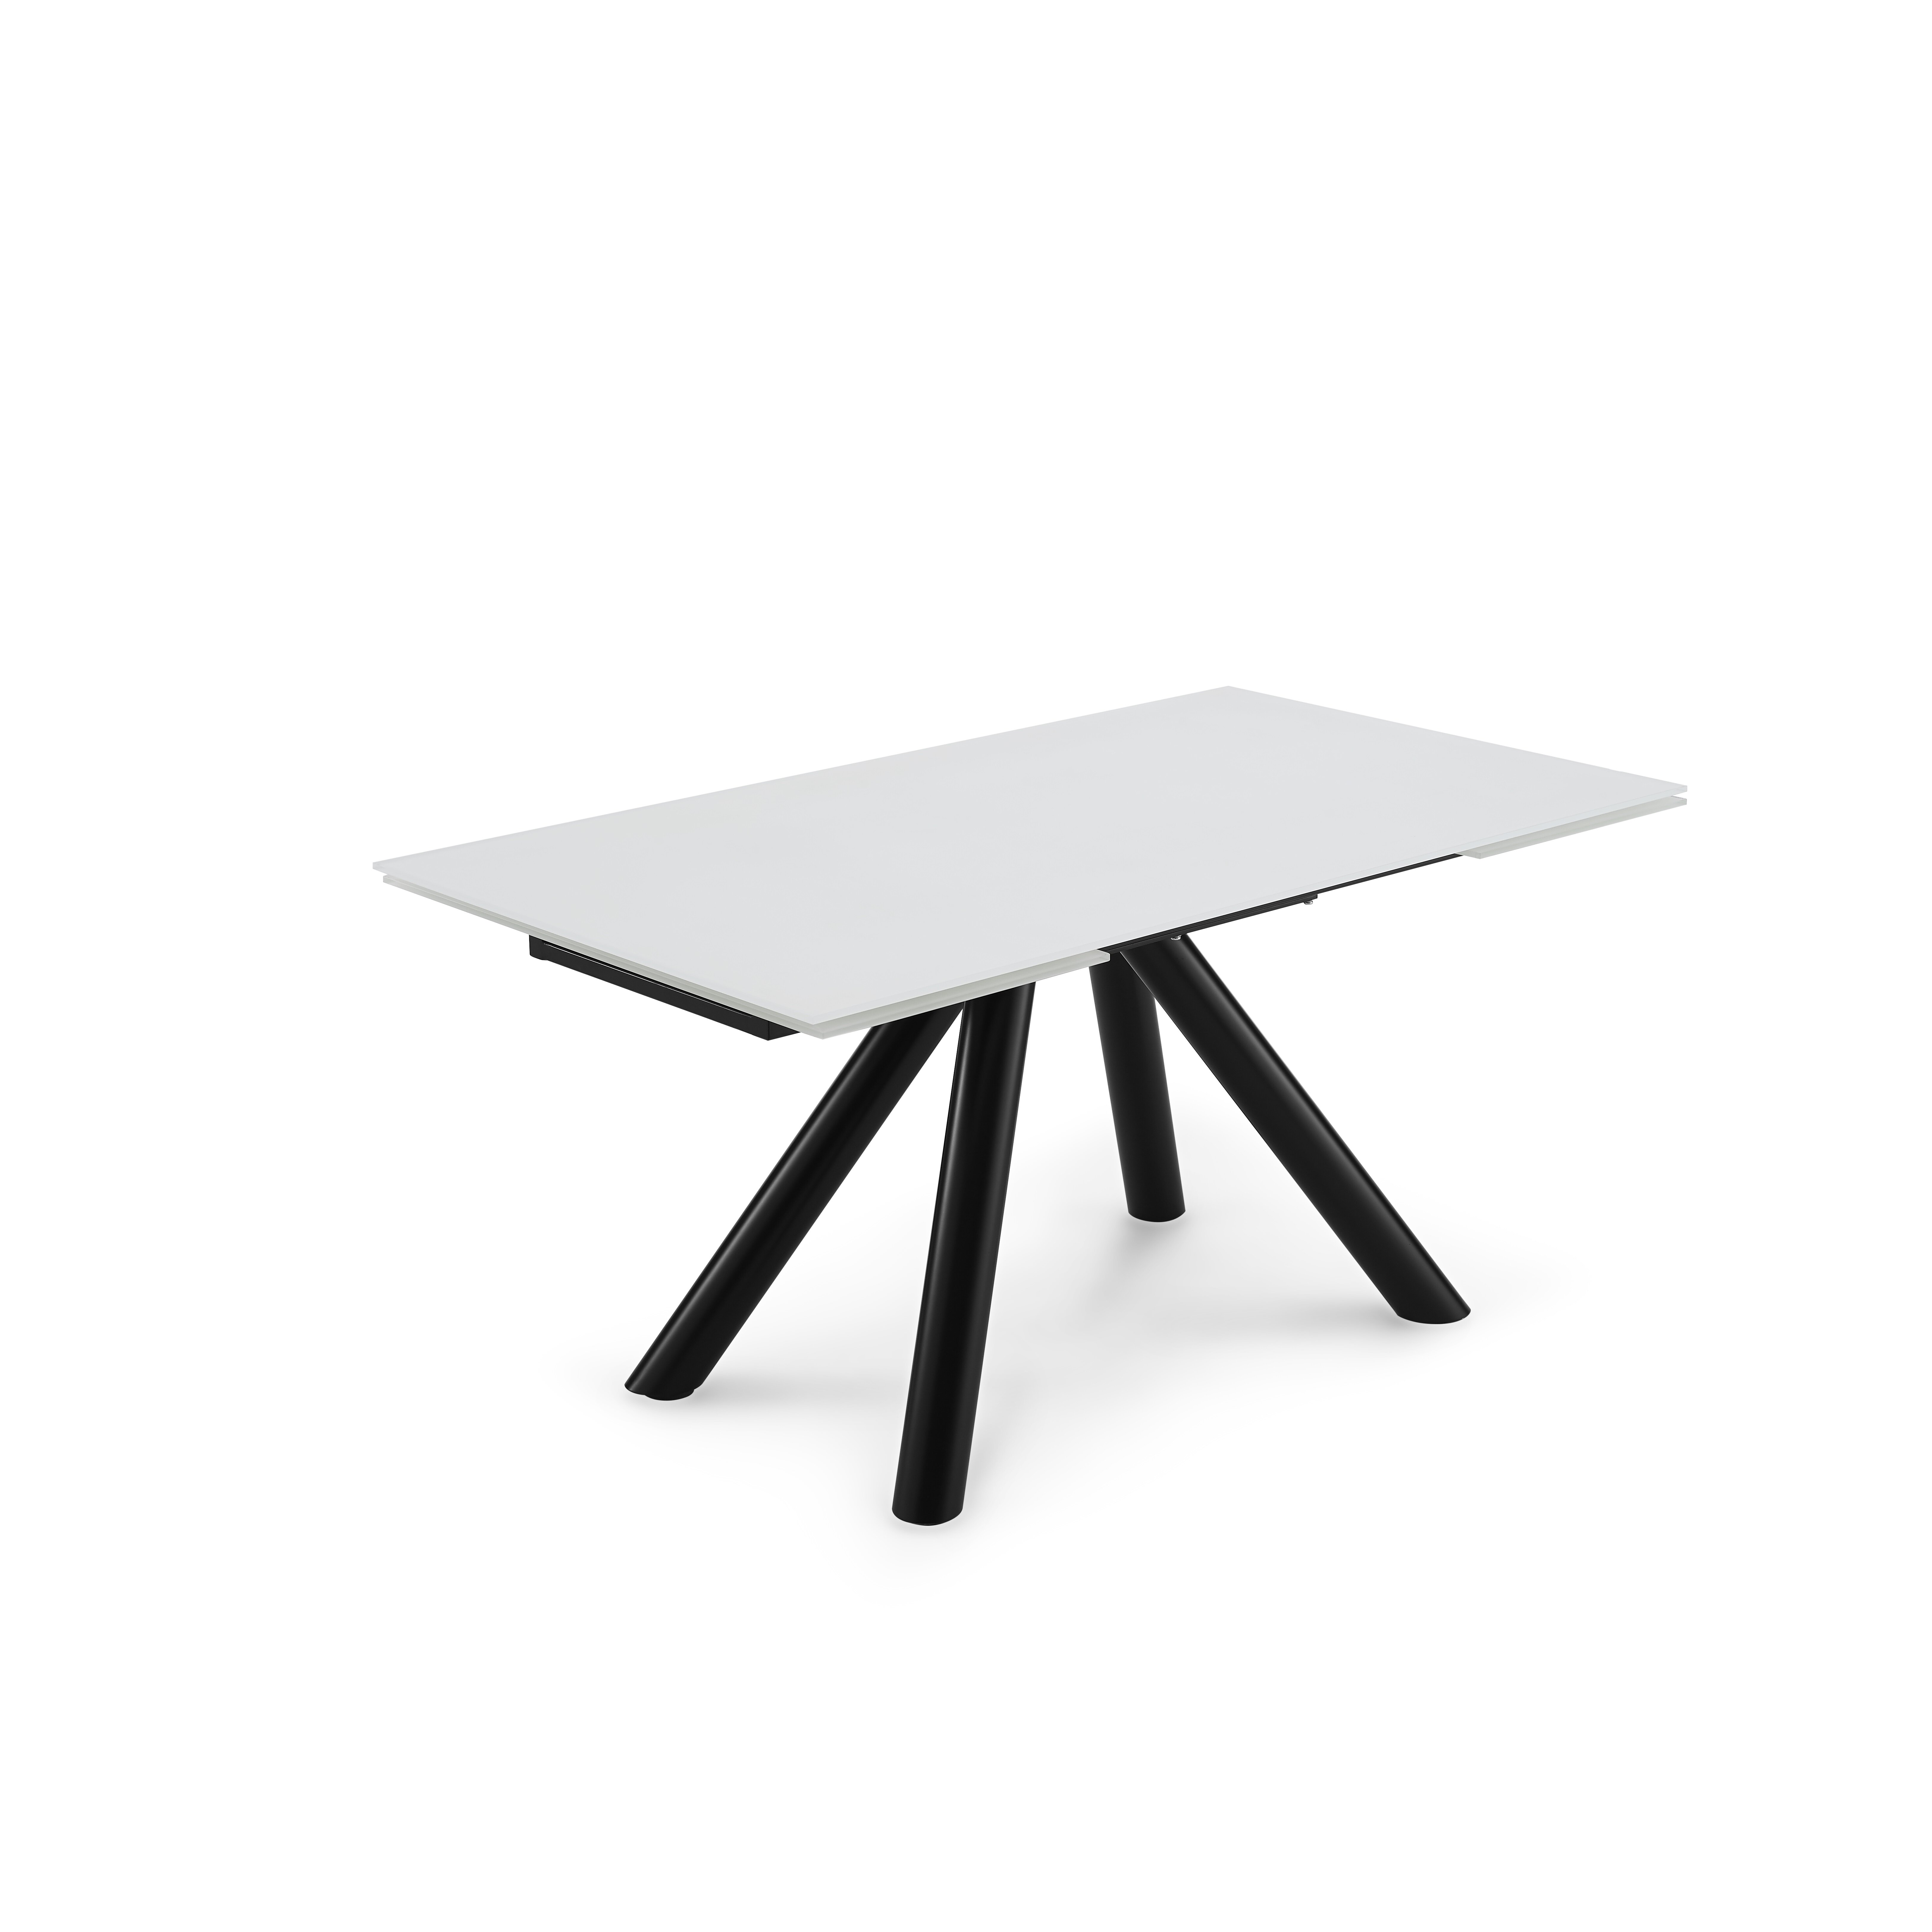 Cool Shingleton Extendable Dining Table Download Free Architecture Designs Scobabritishbridgeorg